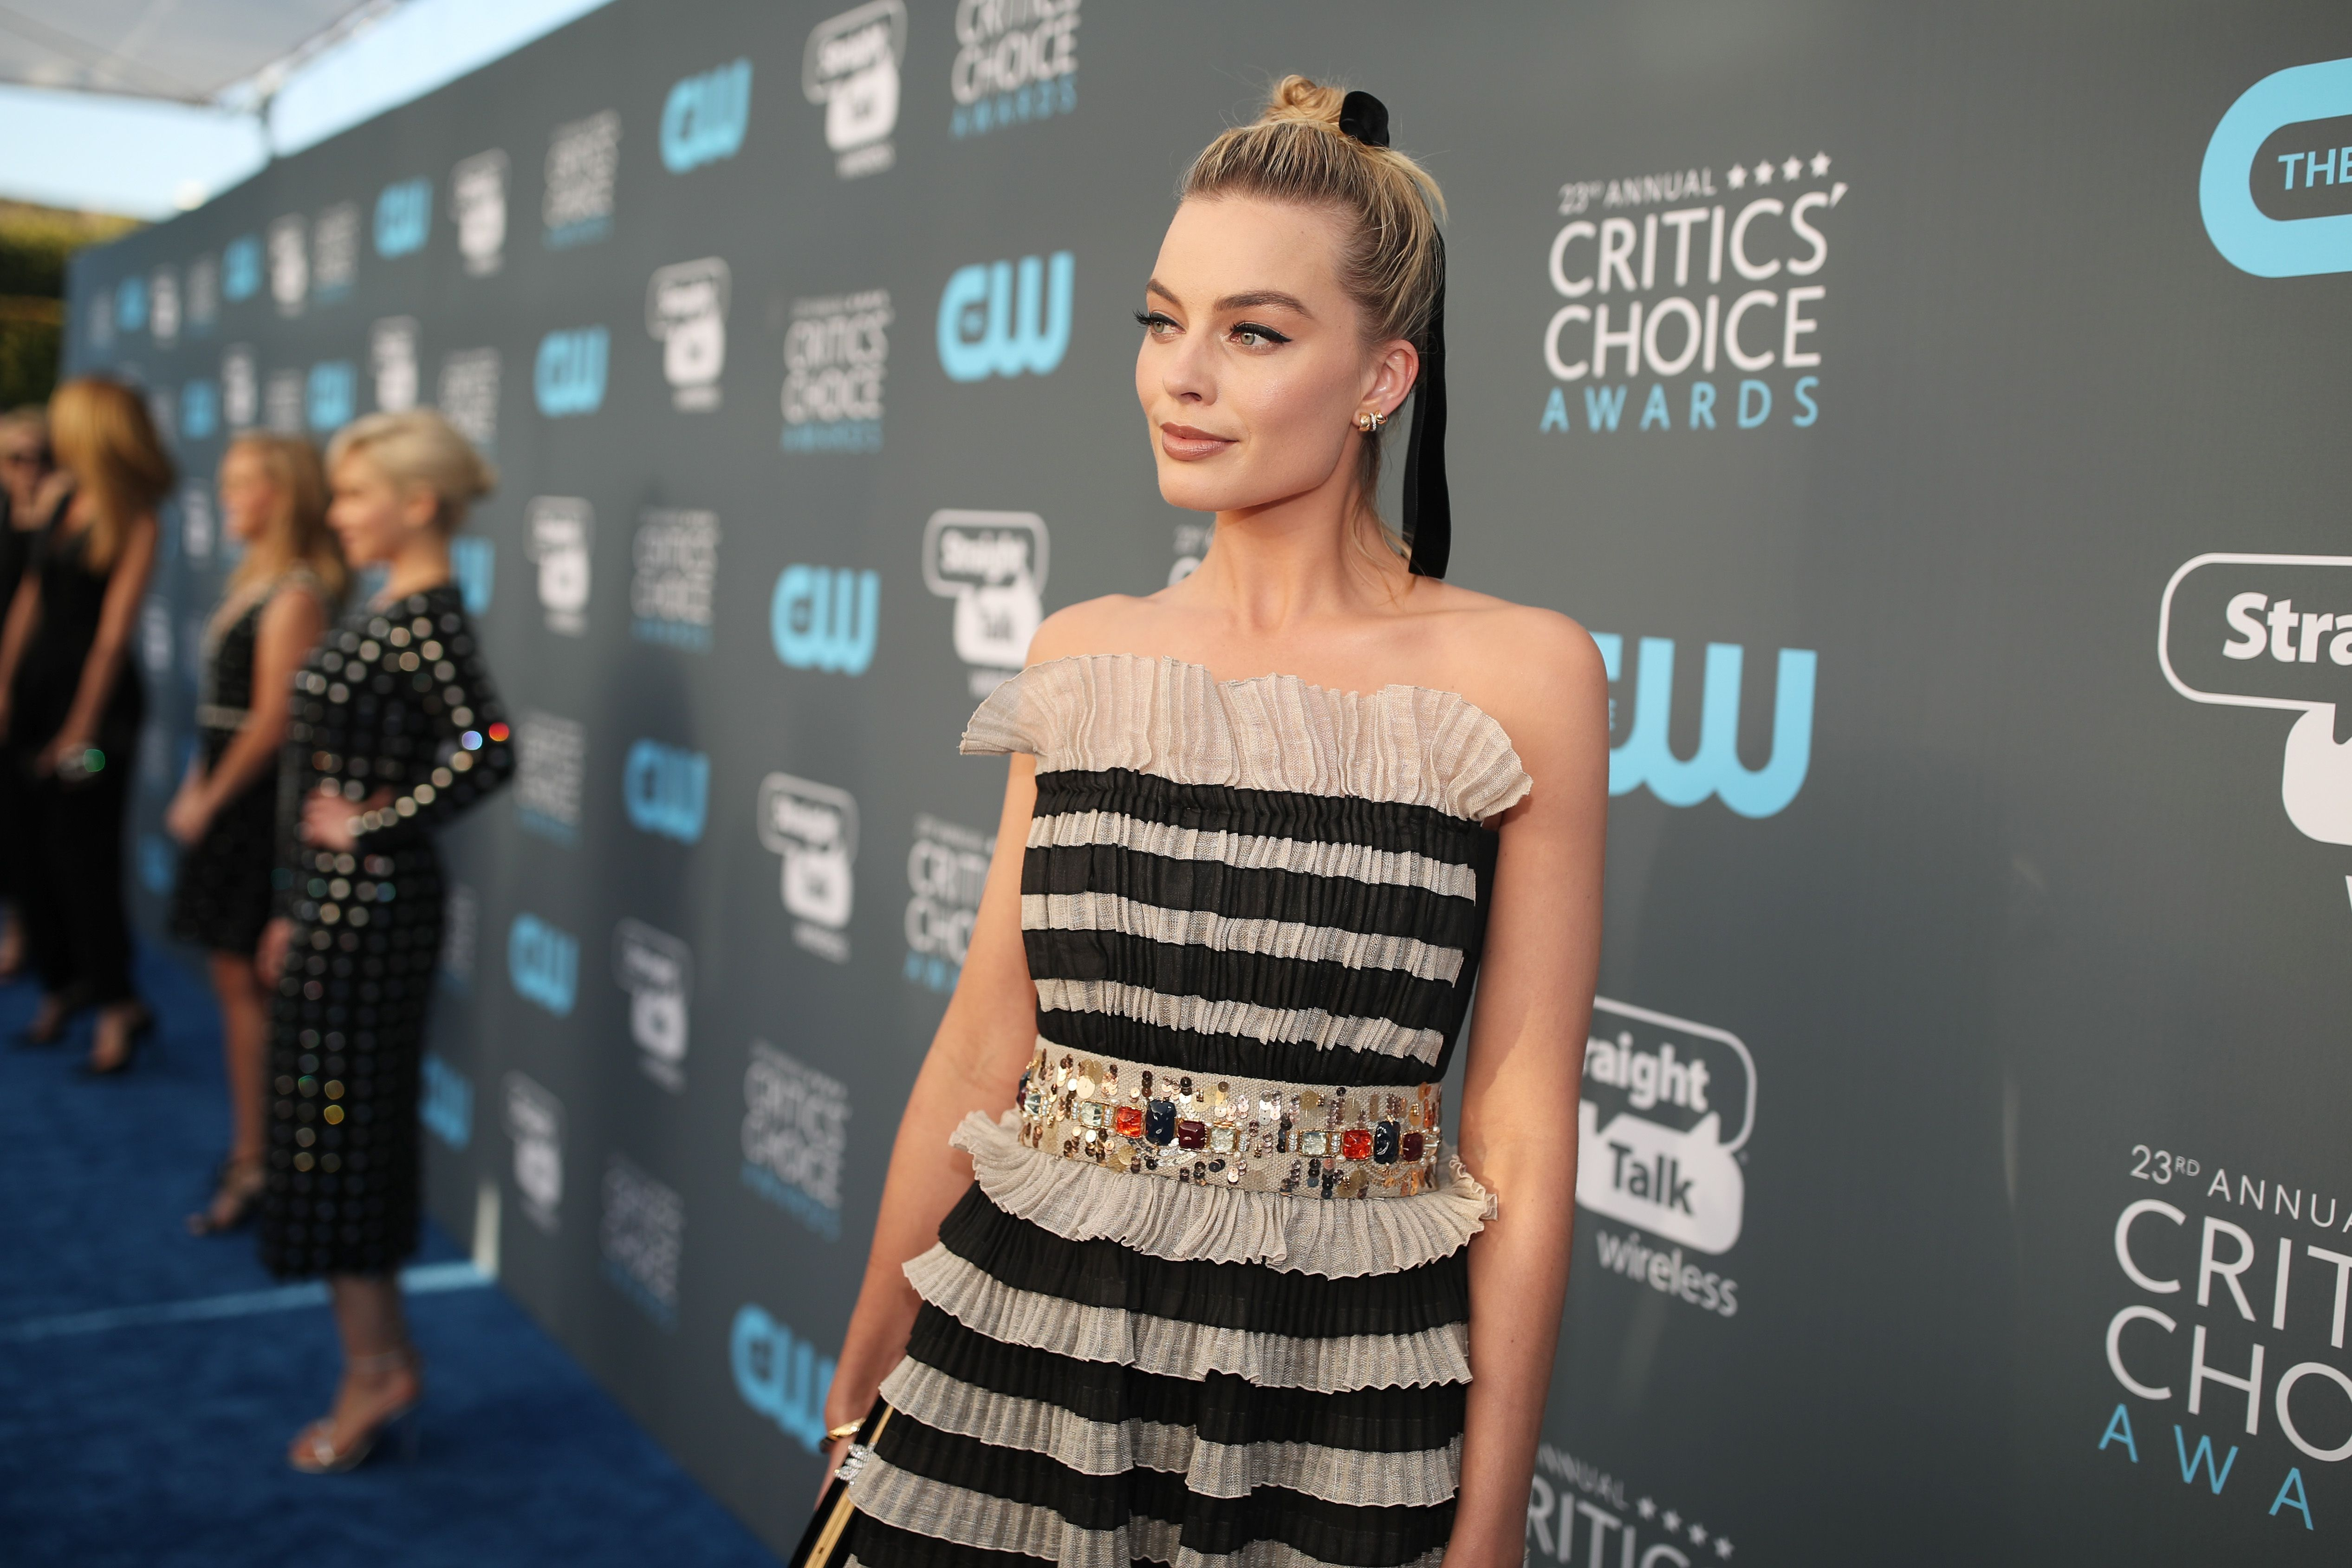 The Most Jaw-Dropping Critics' Choice Awards Looks of All Time